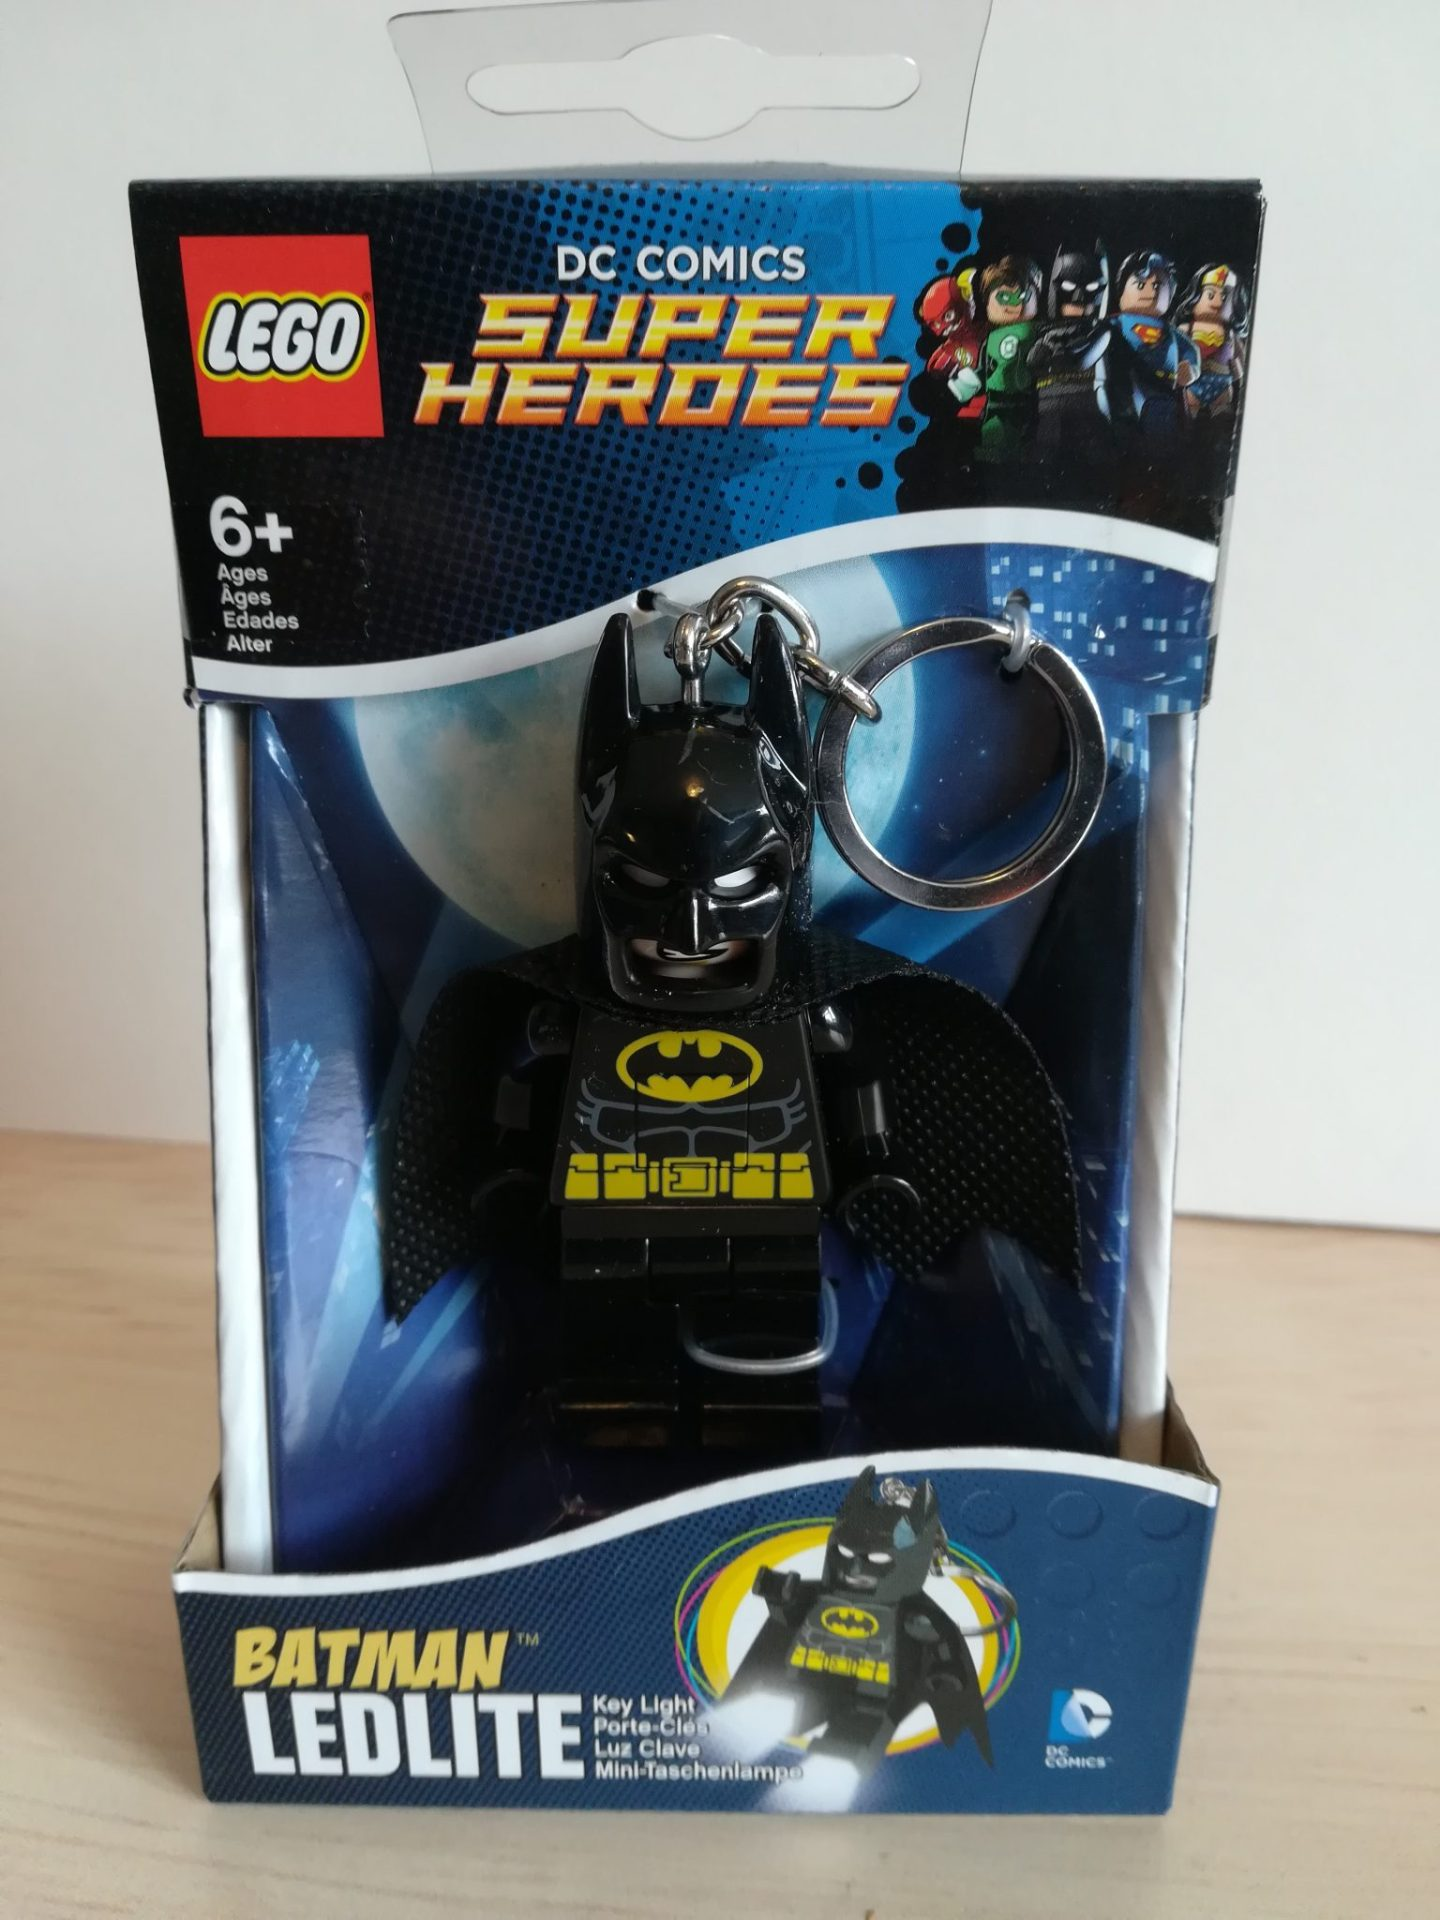 Batman LEGO Key Light